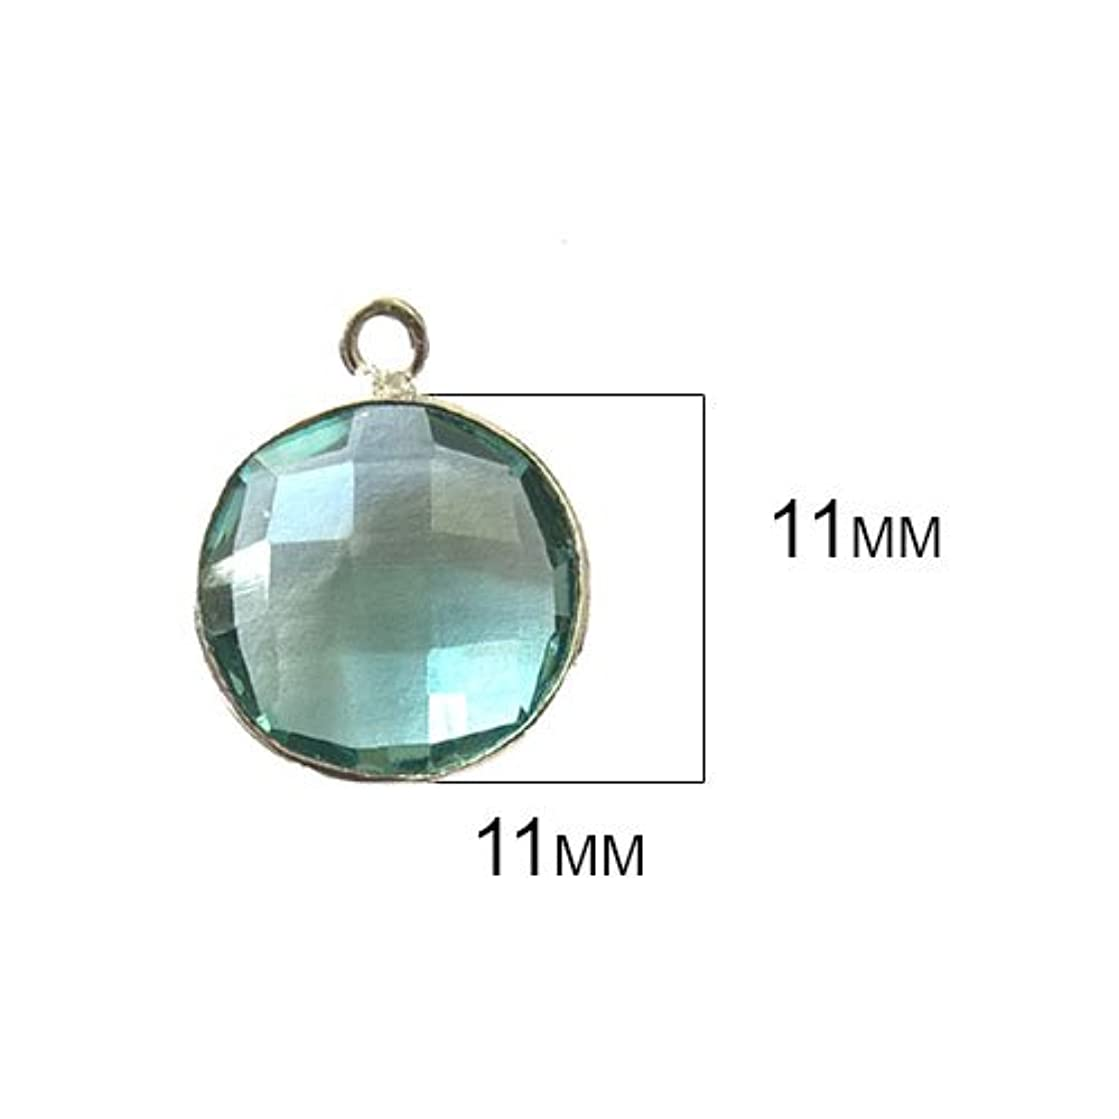 4 Pcs Aquamarine Coin Beads 11mm Silver by BESTINBEADS, Aquamarine Hydro Quartz Coin Pendant Bezel Gemstone Connectors Over 925 Sterling Silver Bezel Jewelry Making Supplies